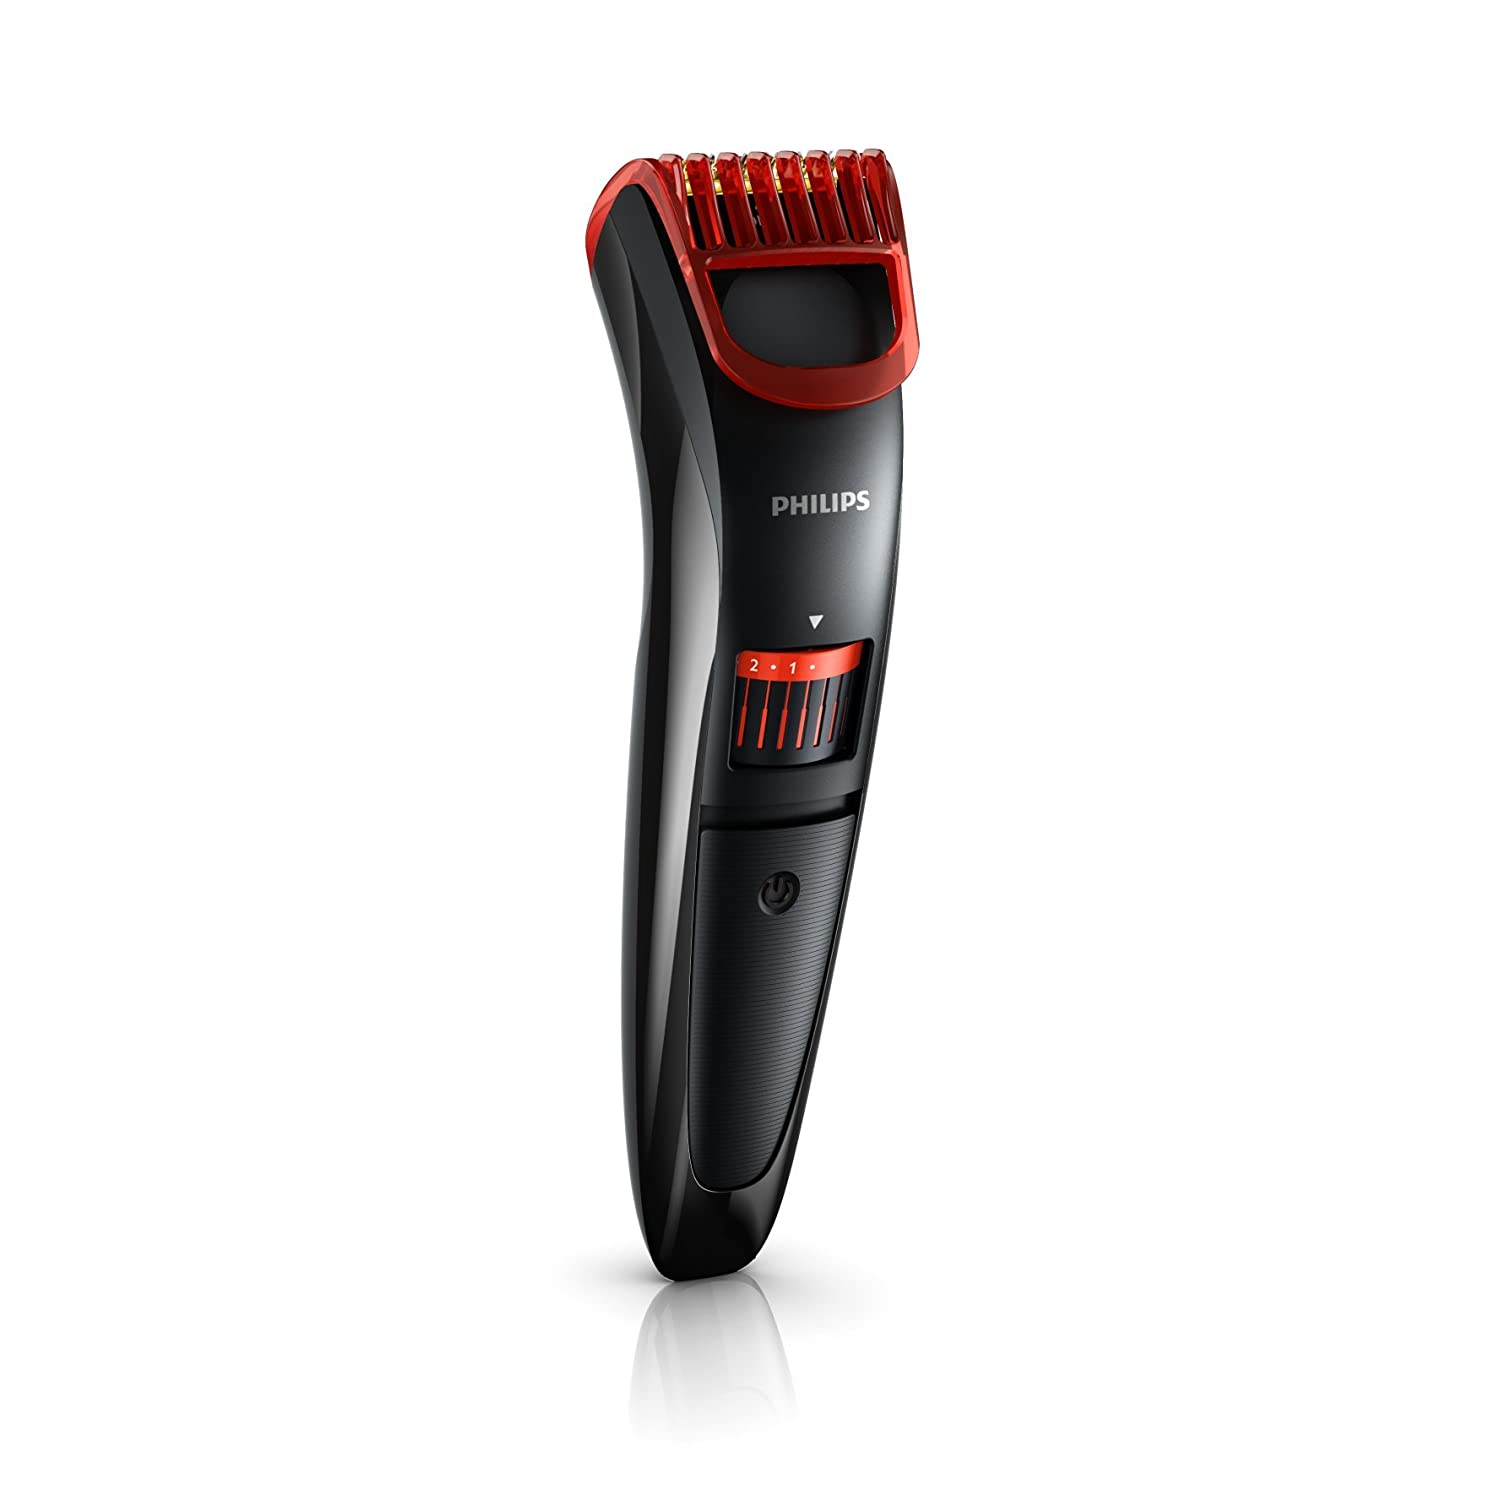 philips qt4011 15 pro skin advance trimmer from amazon rs 1 446 limited peri. Black Bedroom Furniture Sets. Home Design Ideas